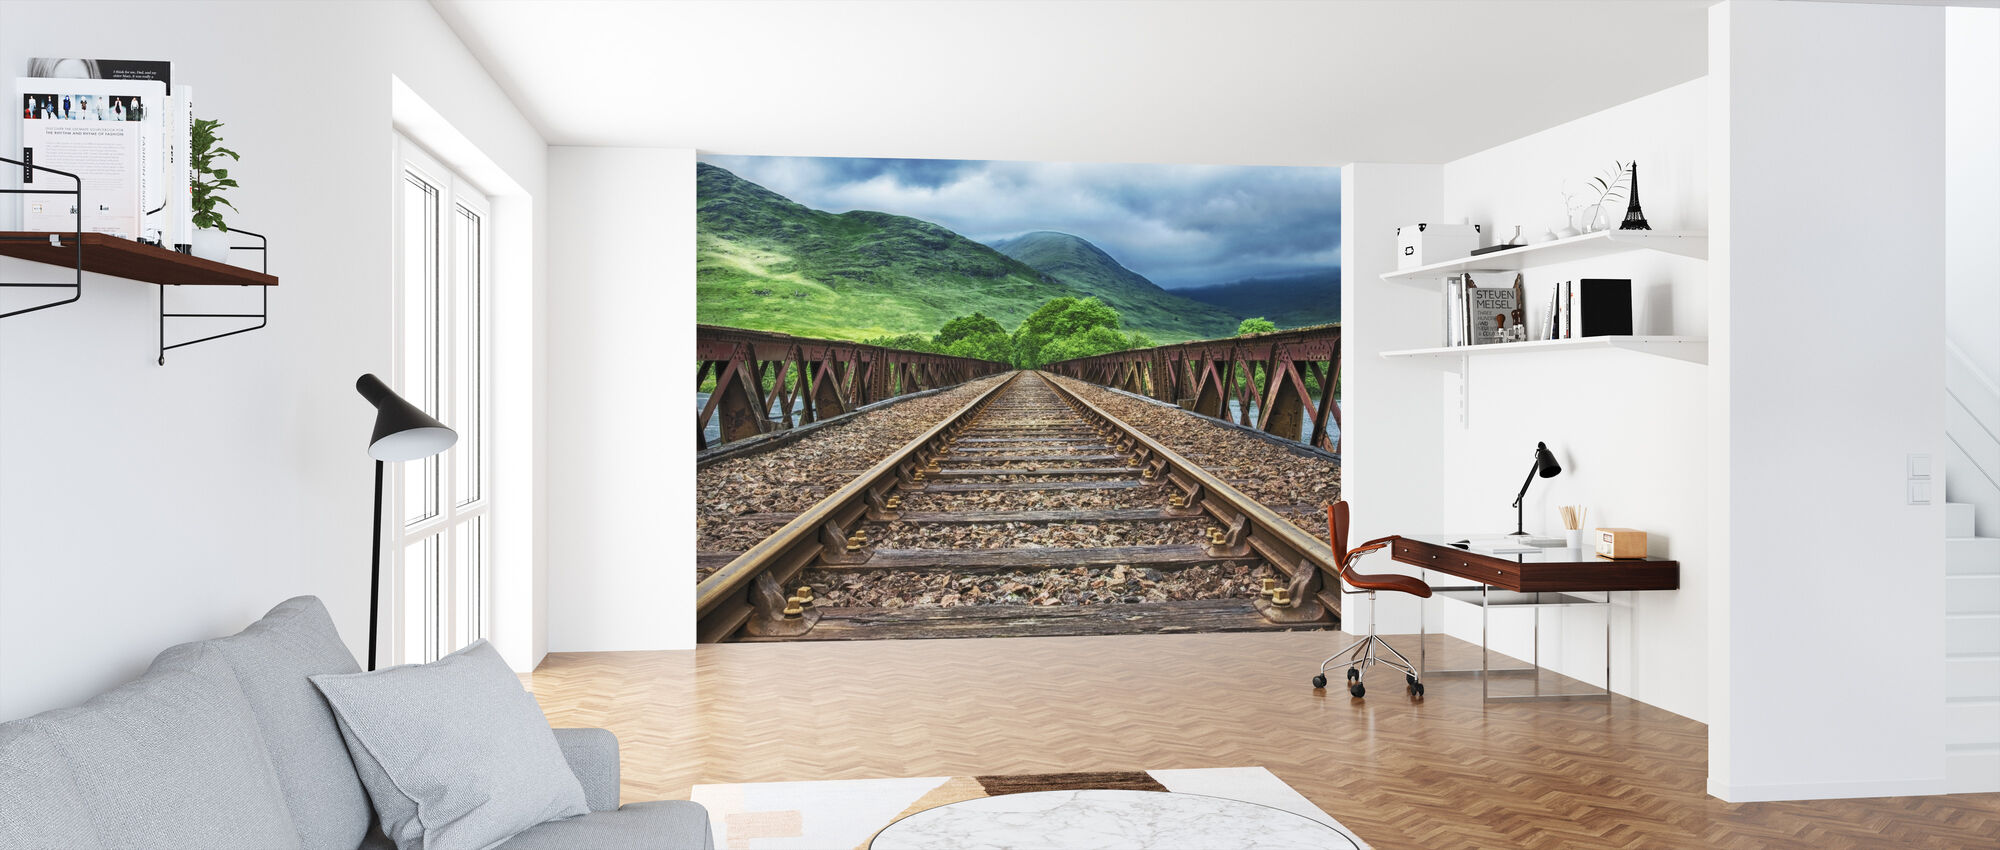 Railway Bridge Tracks - Wallpaper - Office